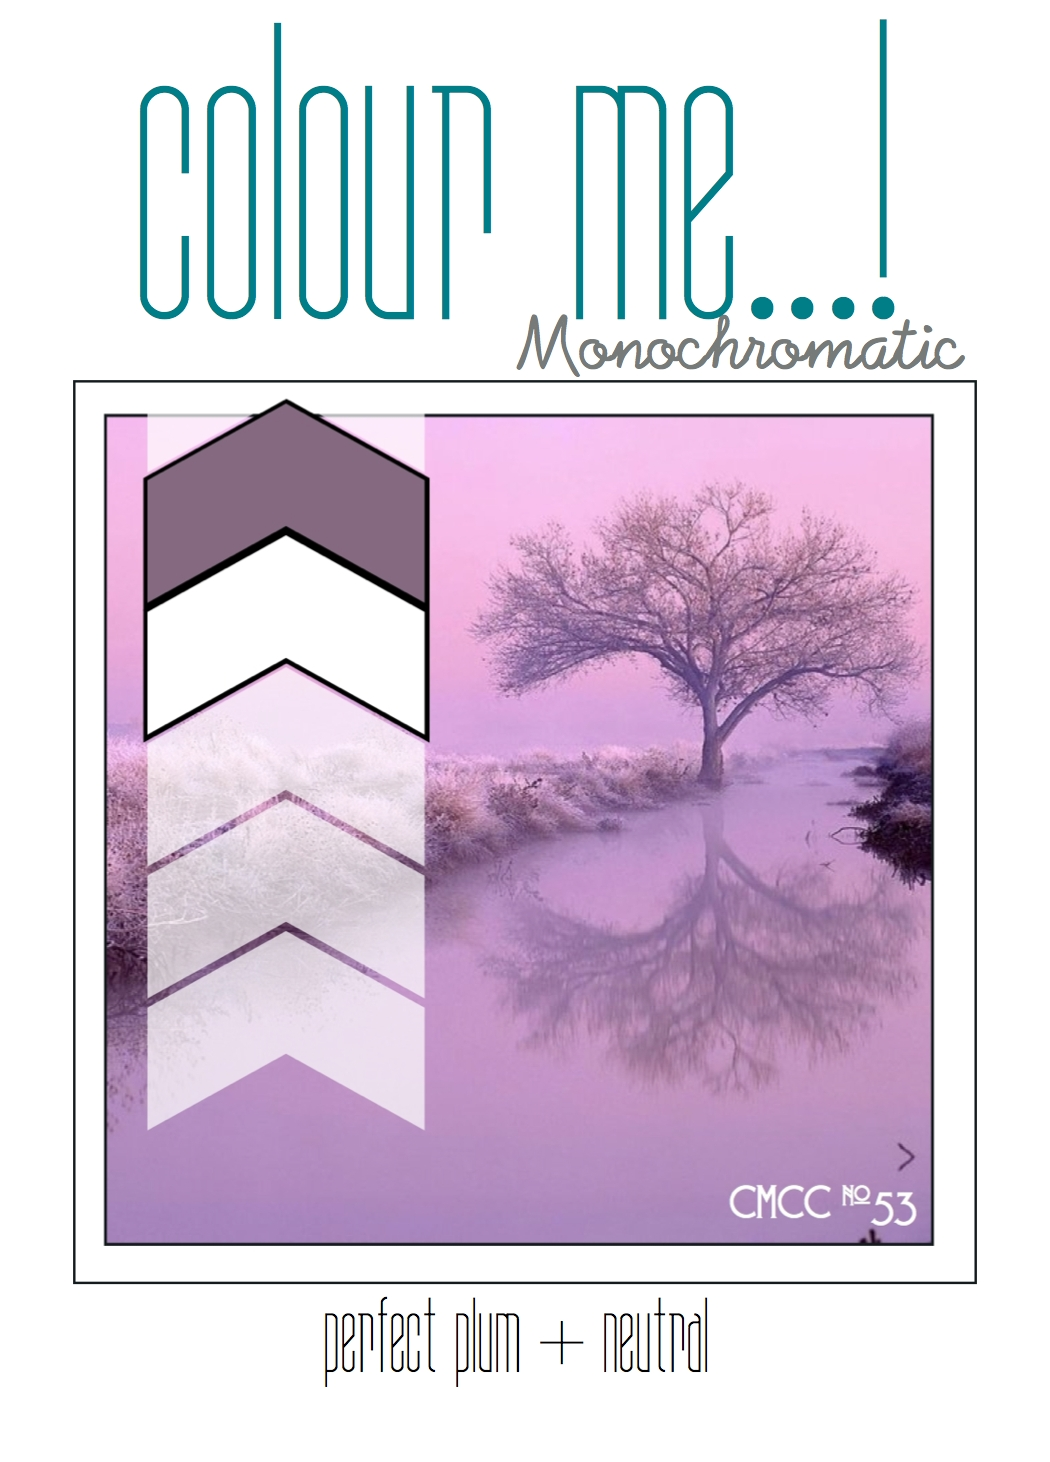 http://colourmecardchallenge.blogspot.de/2015/01/cmcc53-colour-me-monochromatic.html